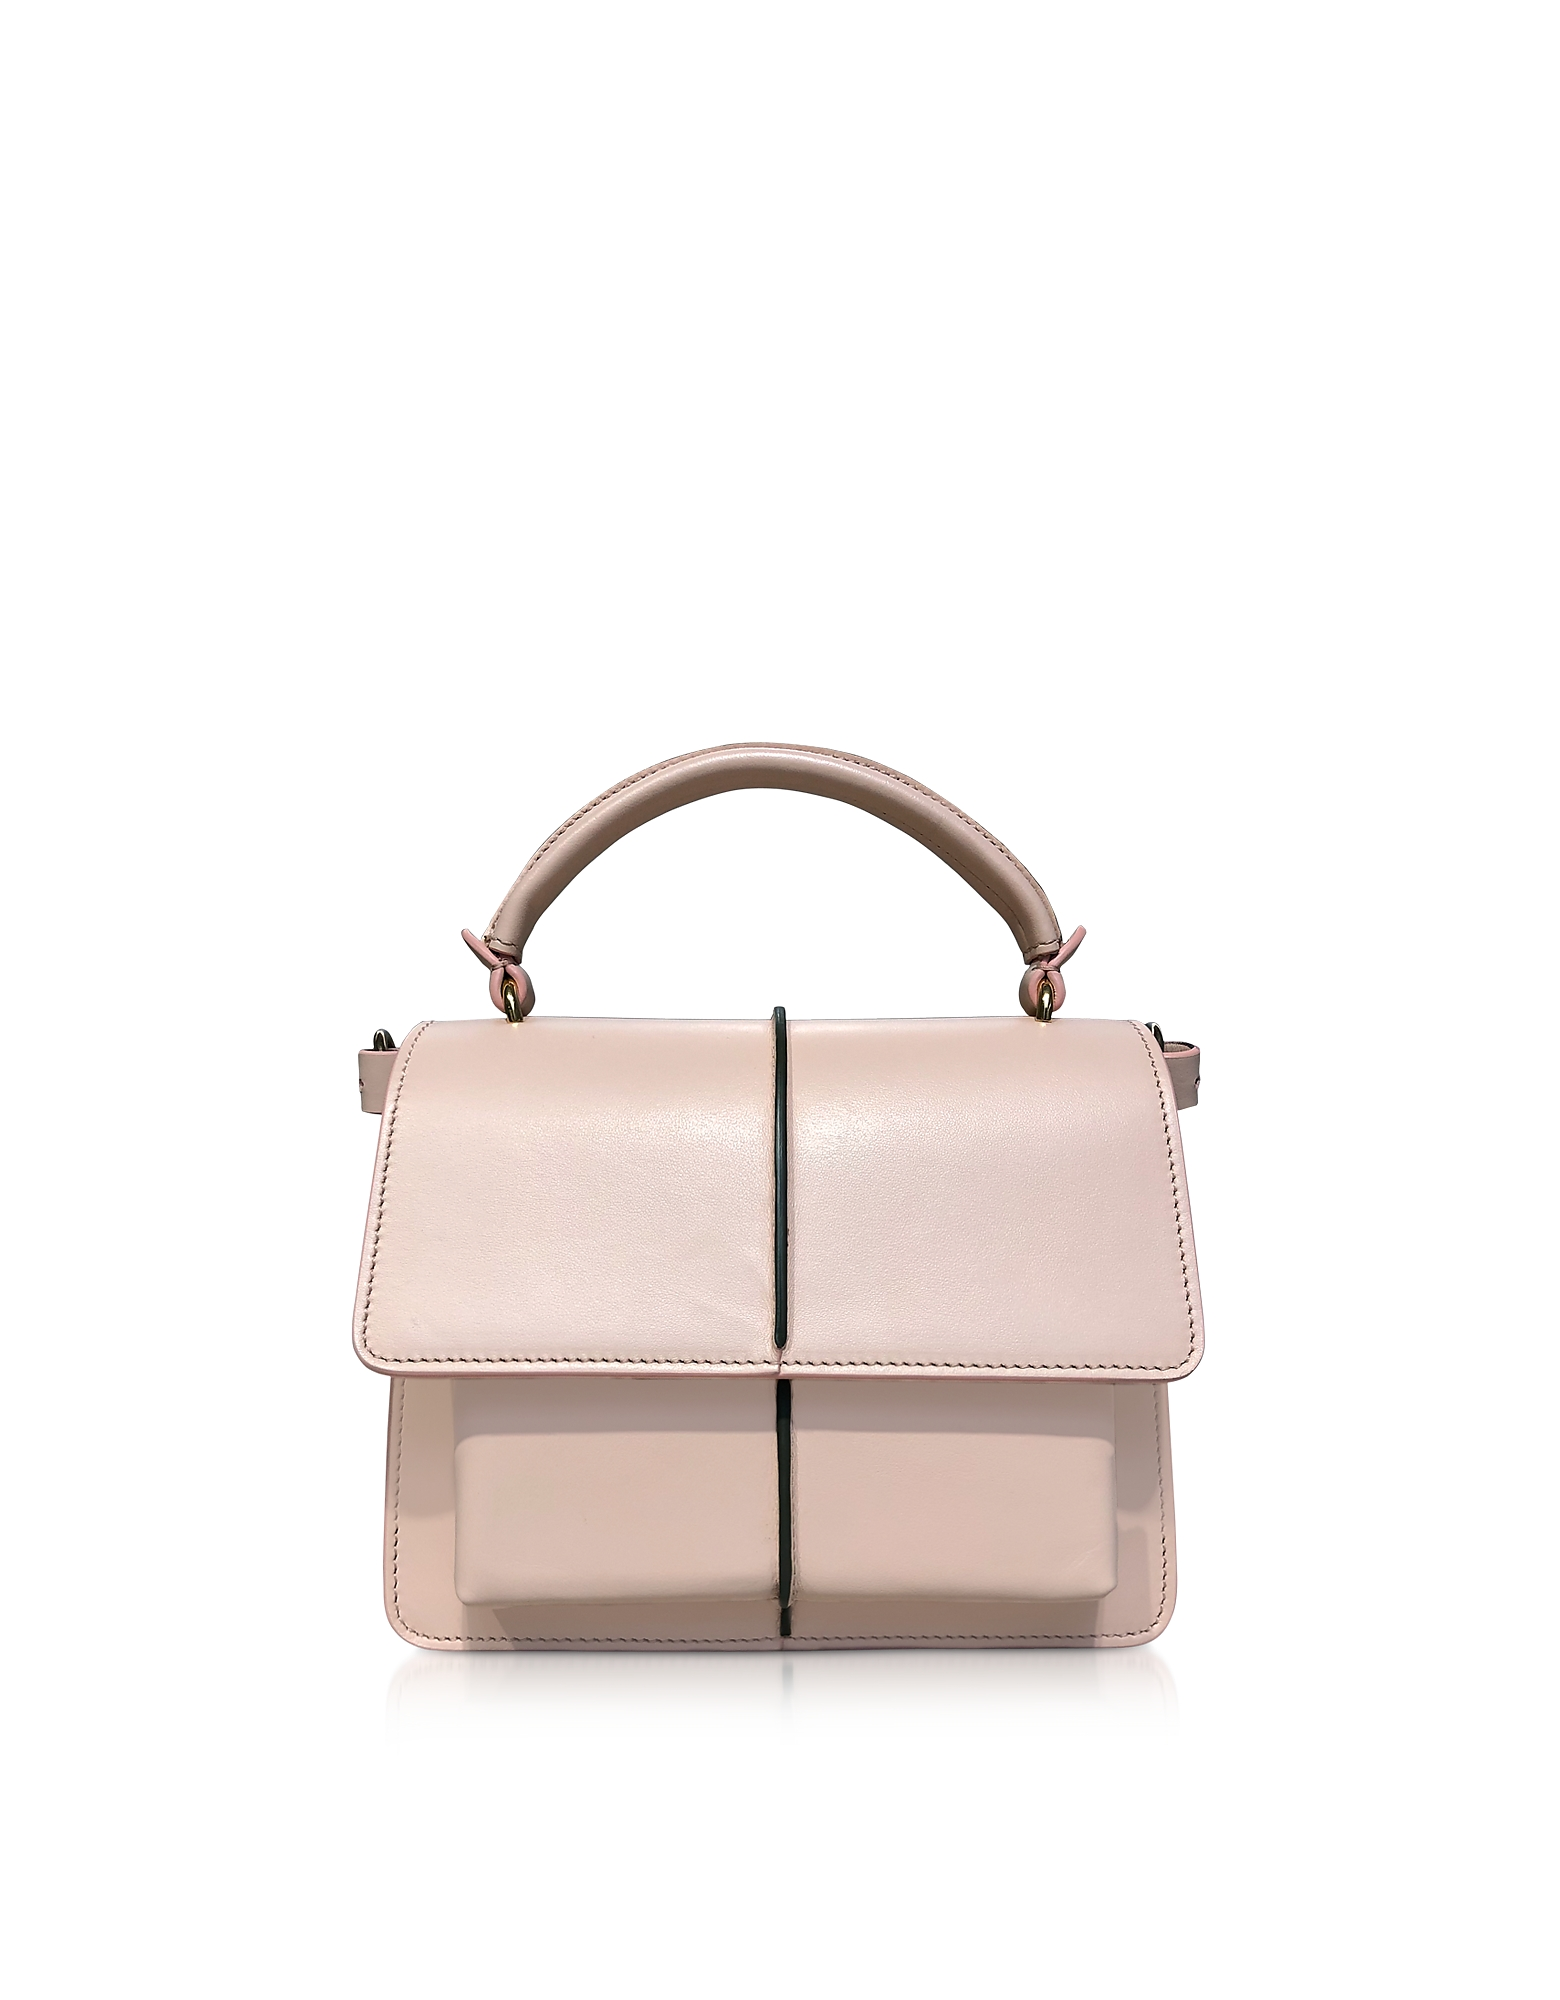 Marni Smooth Leather Top Handle AttachÉ Bag In Antique Pink